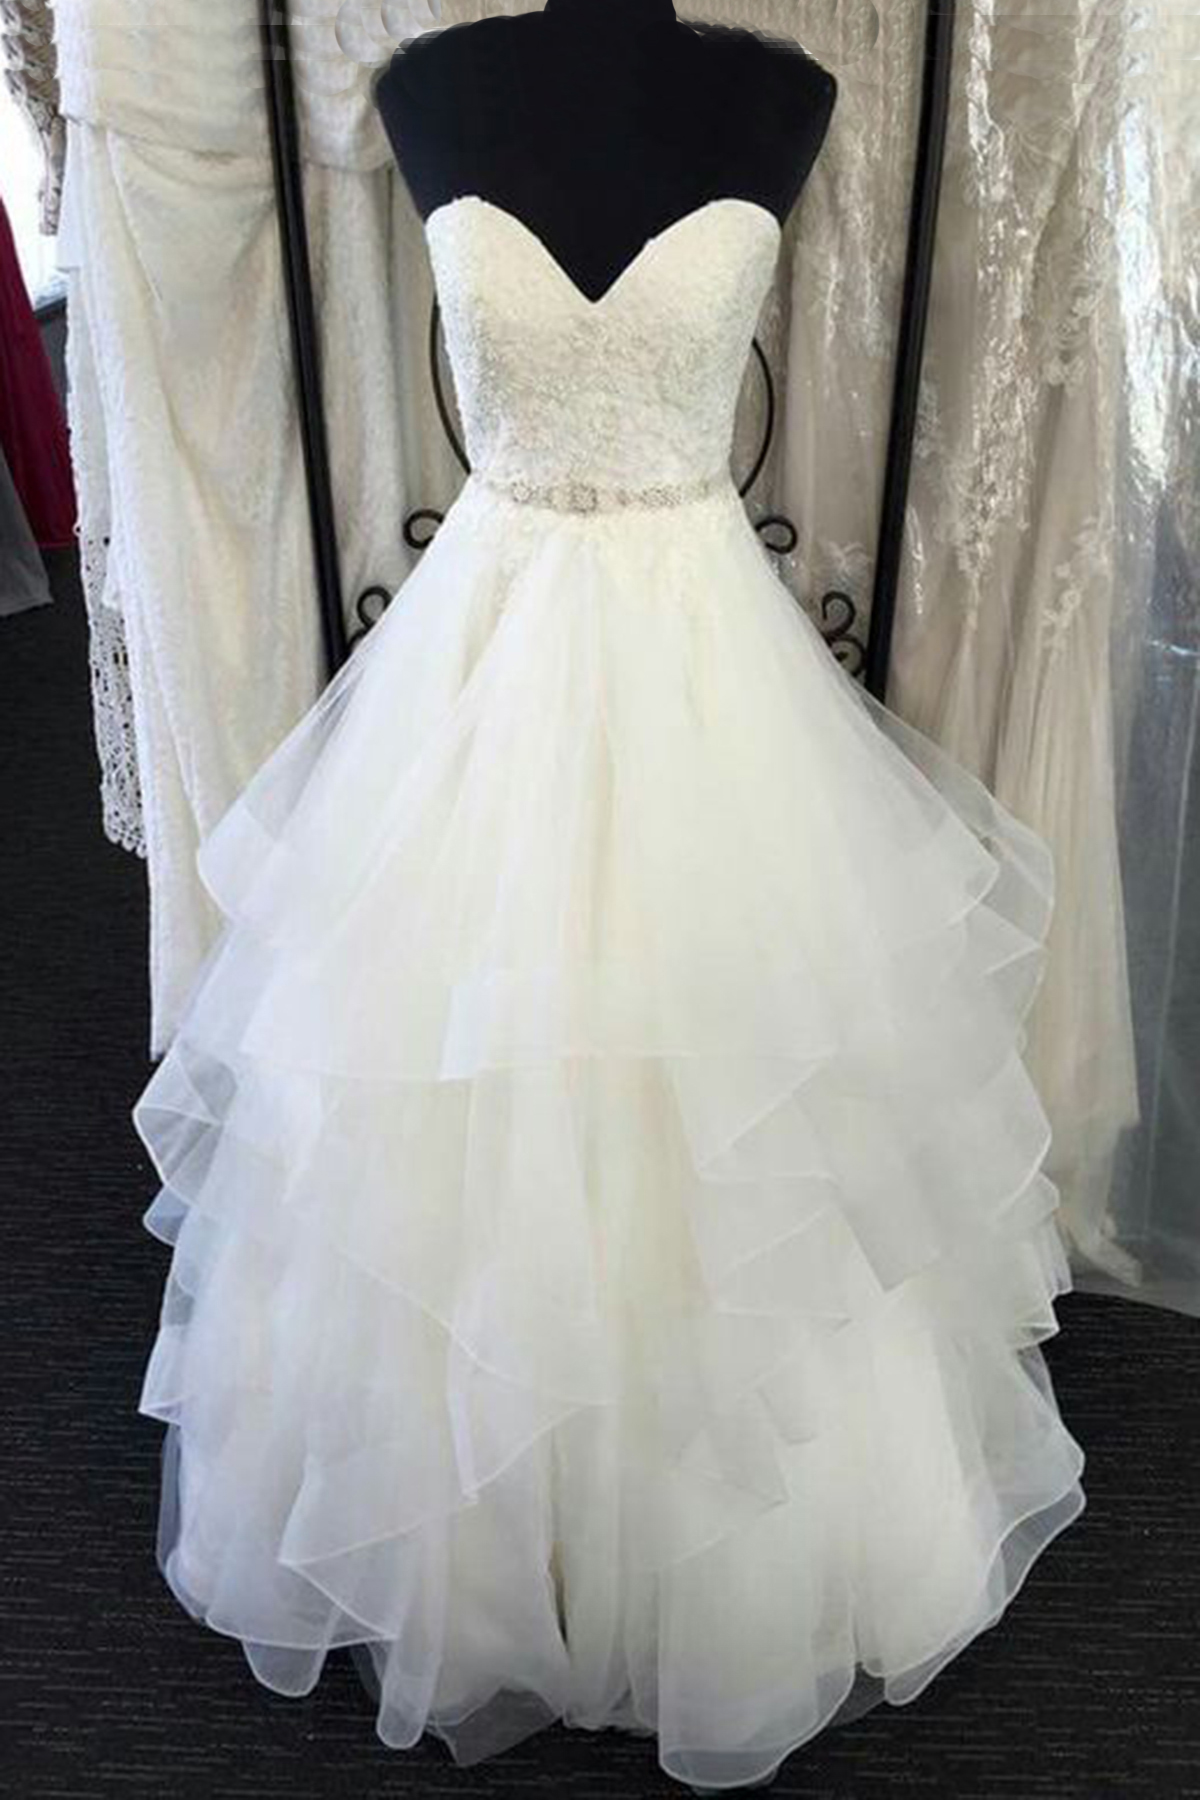 c7011c4c22a6 New design white tulle long layer lace wedding dress, formal prom dress